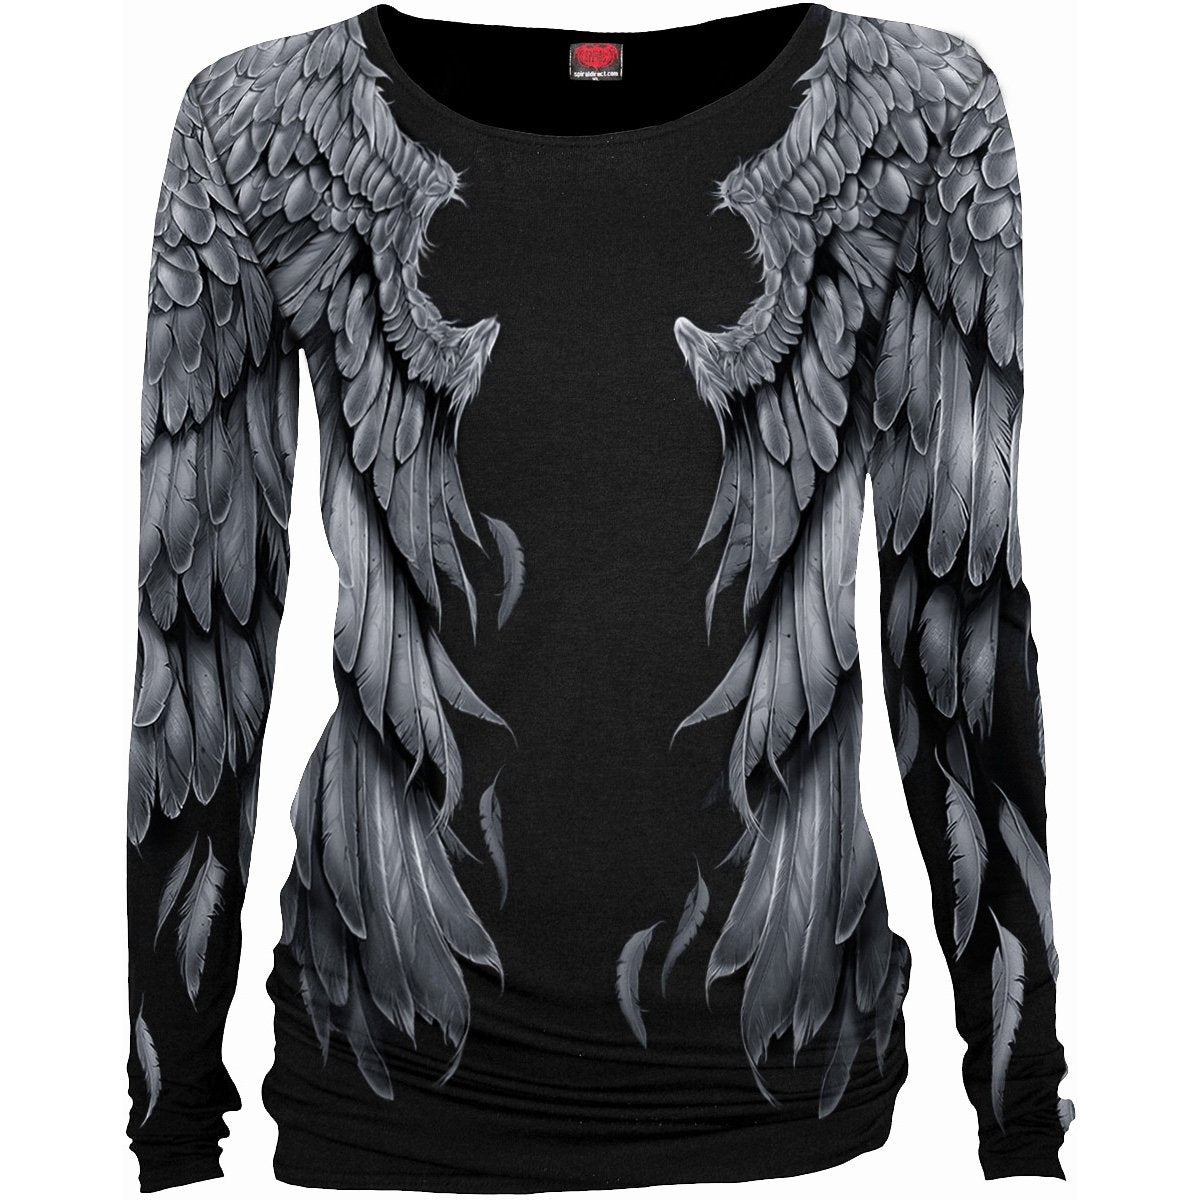 Angel Wings Women's Black Longsleeve Top - Rebels Depot